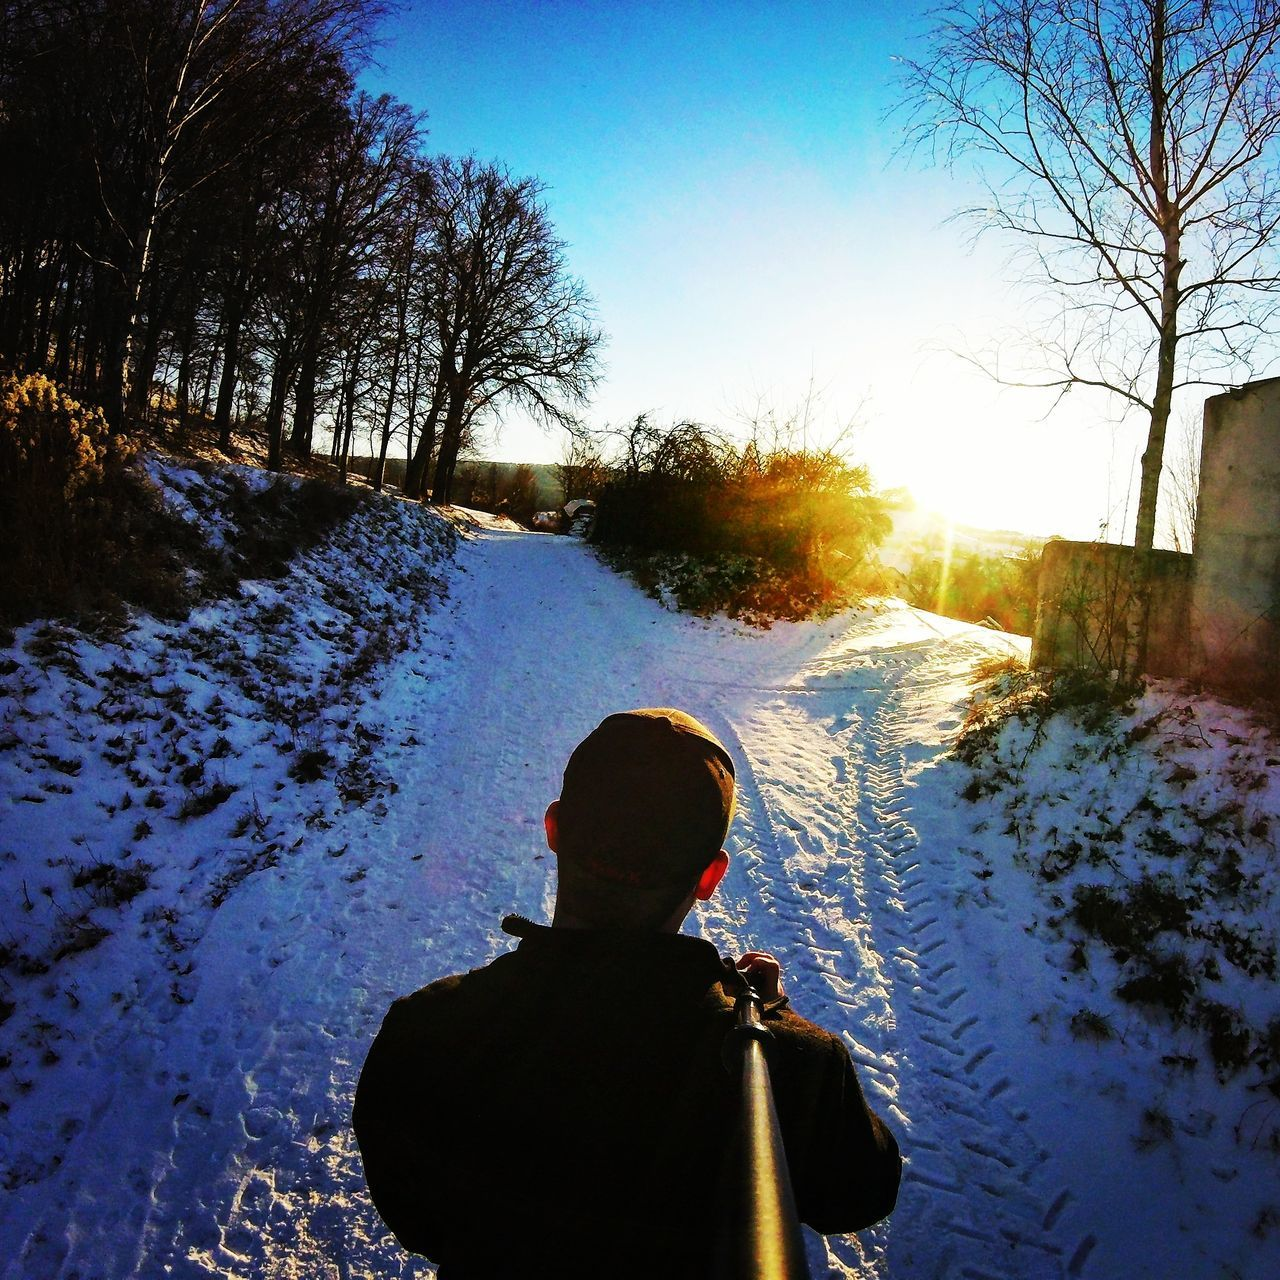 First Eyeem Photo Snow Sunset Sunshine Goprohero4 Goprooftheday Goprophotography Snapseed Gopro Gopro Session Winter Winter Wonderland Cold EyEmNewHere